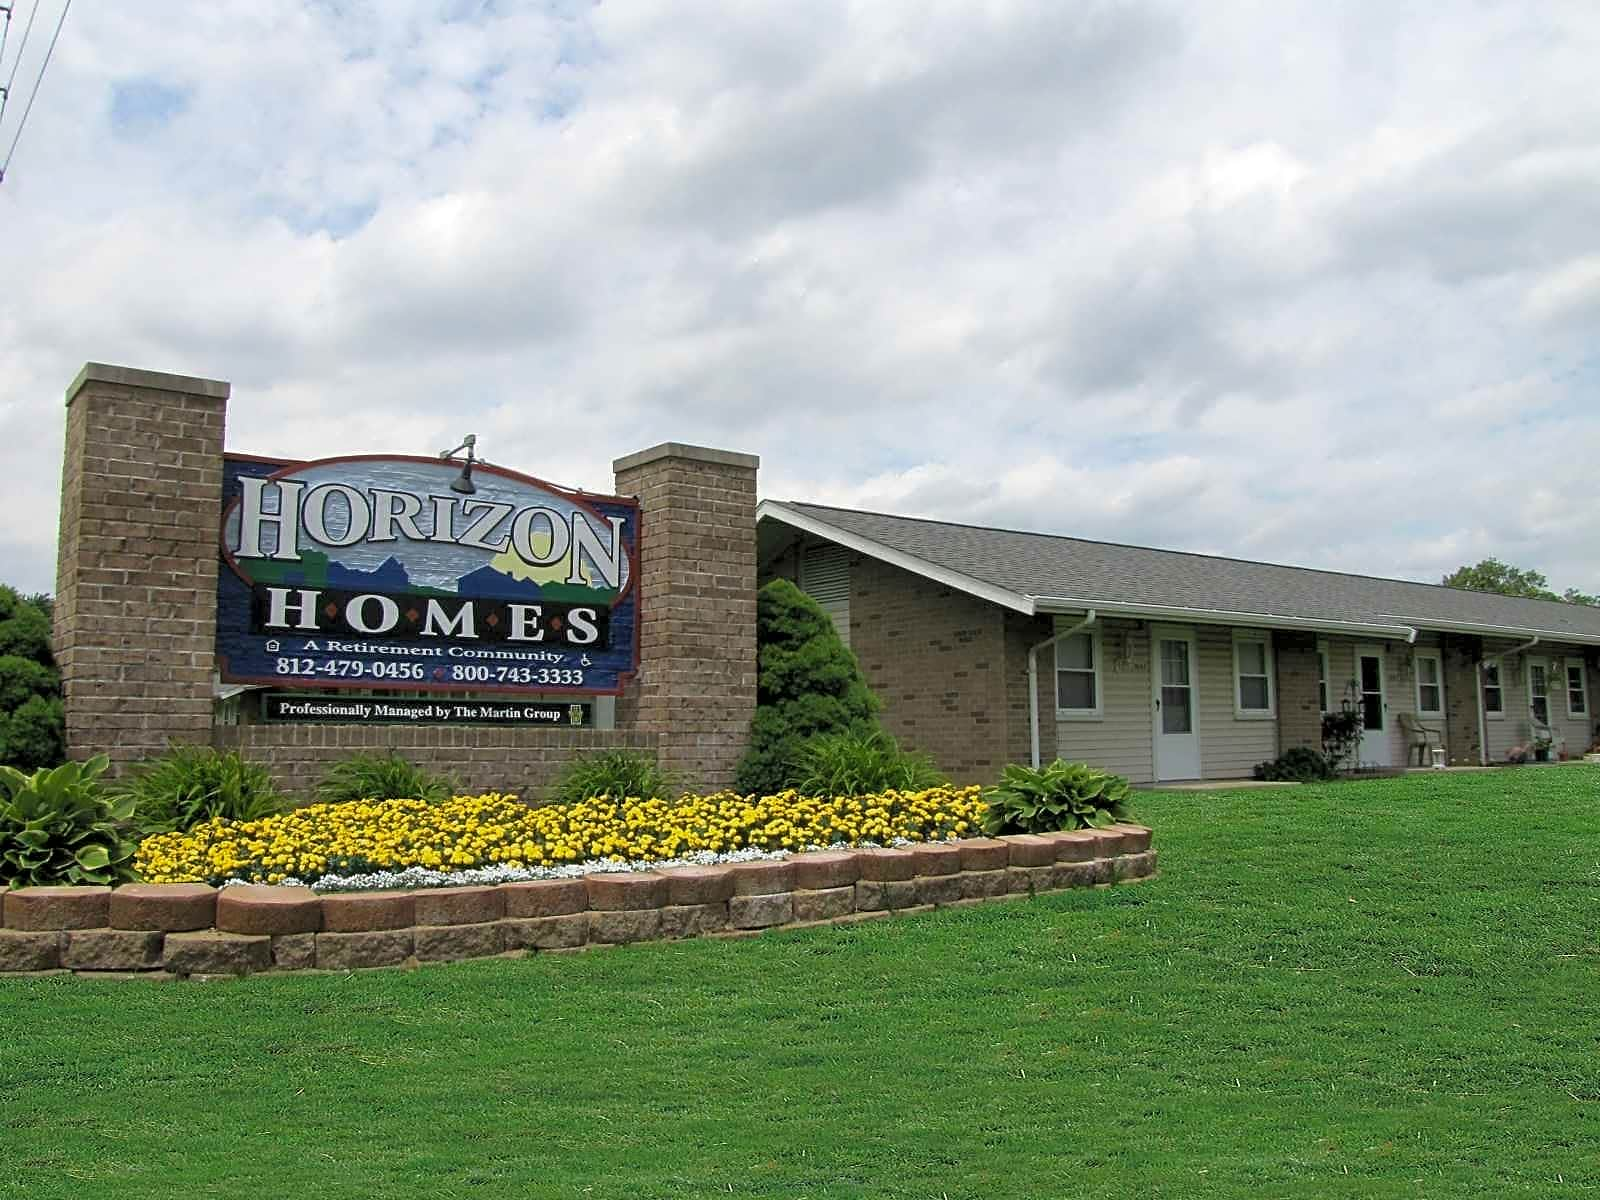 Apartments Near Ross Medical Education Center-Evansville Horizon Homes Retirement Community for Ross Medical Education Center-Evansville Students in Evansville, IN